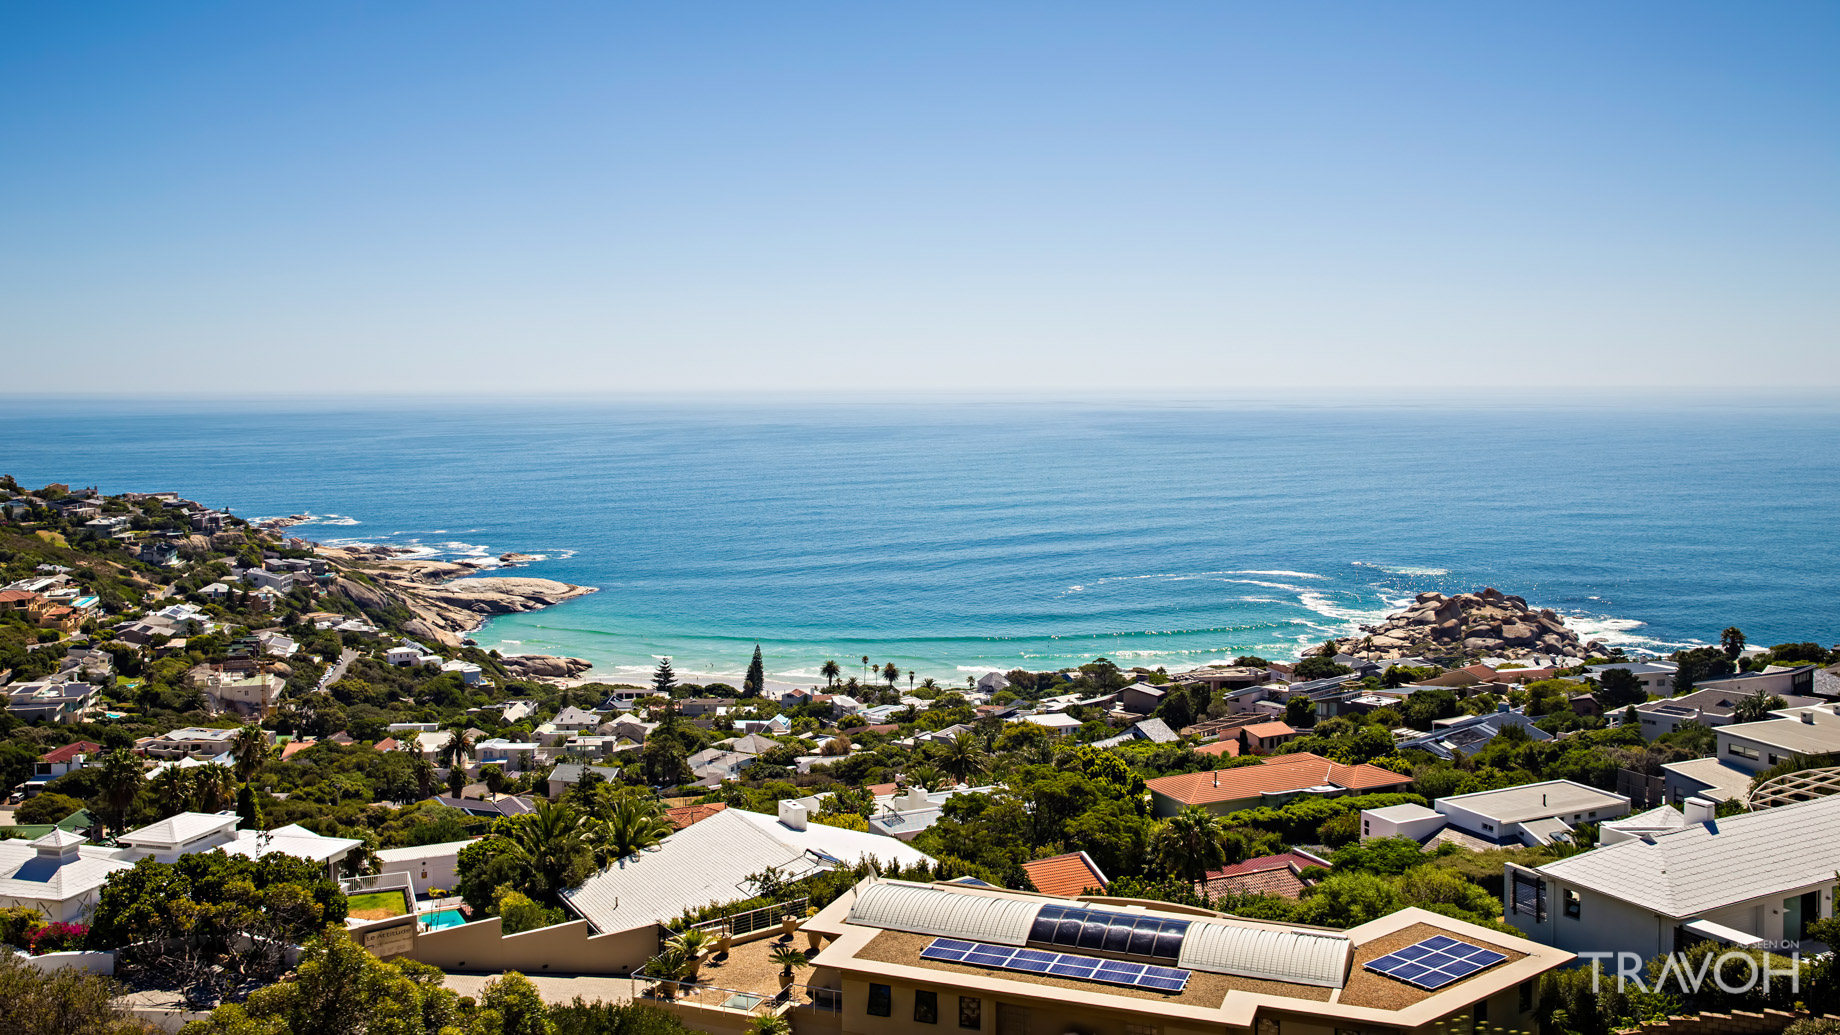 Llandudno Beach - Exploring 10 of the Top Beaches in Cape Town South Africa